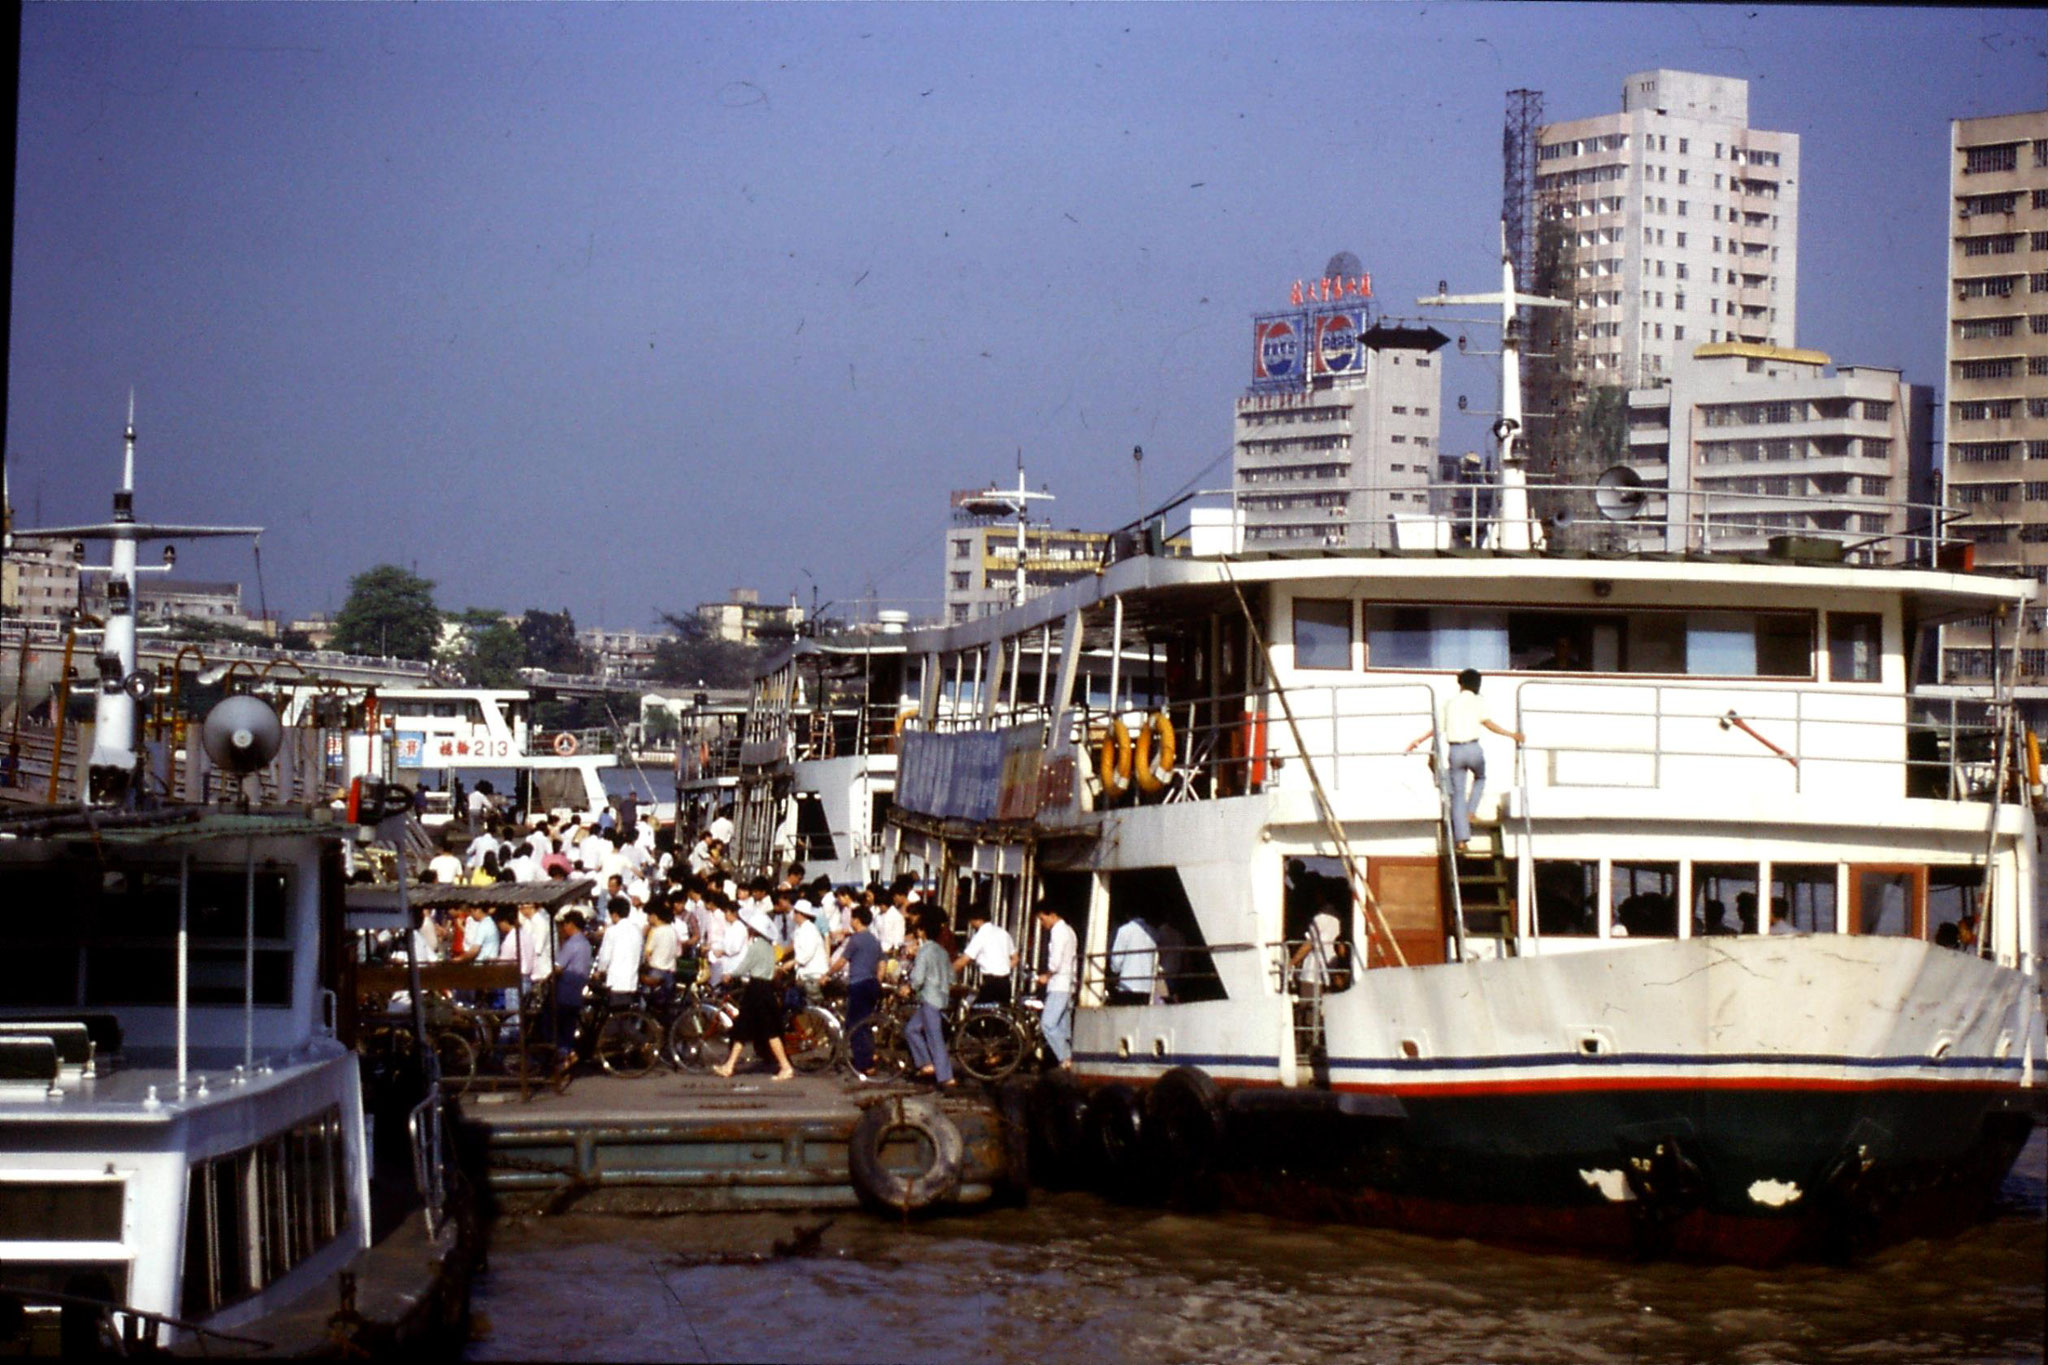 17/5/1989: 28: Guangzhou, cycles coming off ferry at Shaman Island